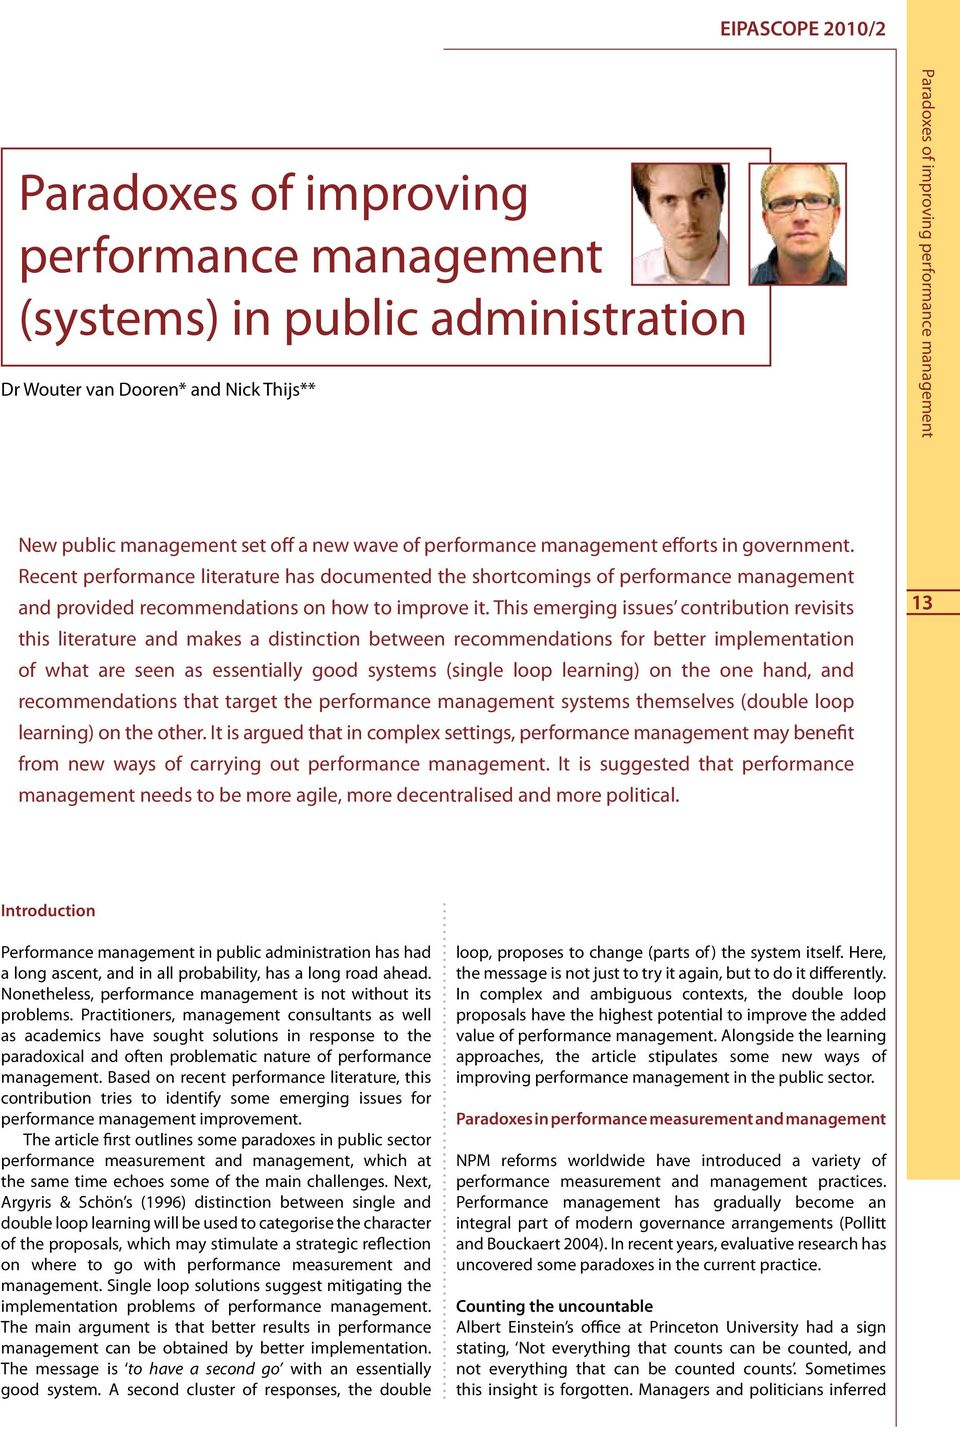 Recent performance literature has documented the shortcomings of performance management and provided recommendations on how to improve it.